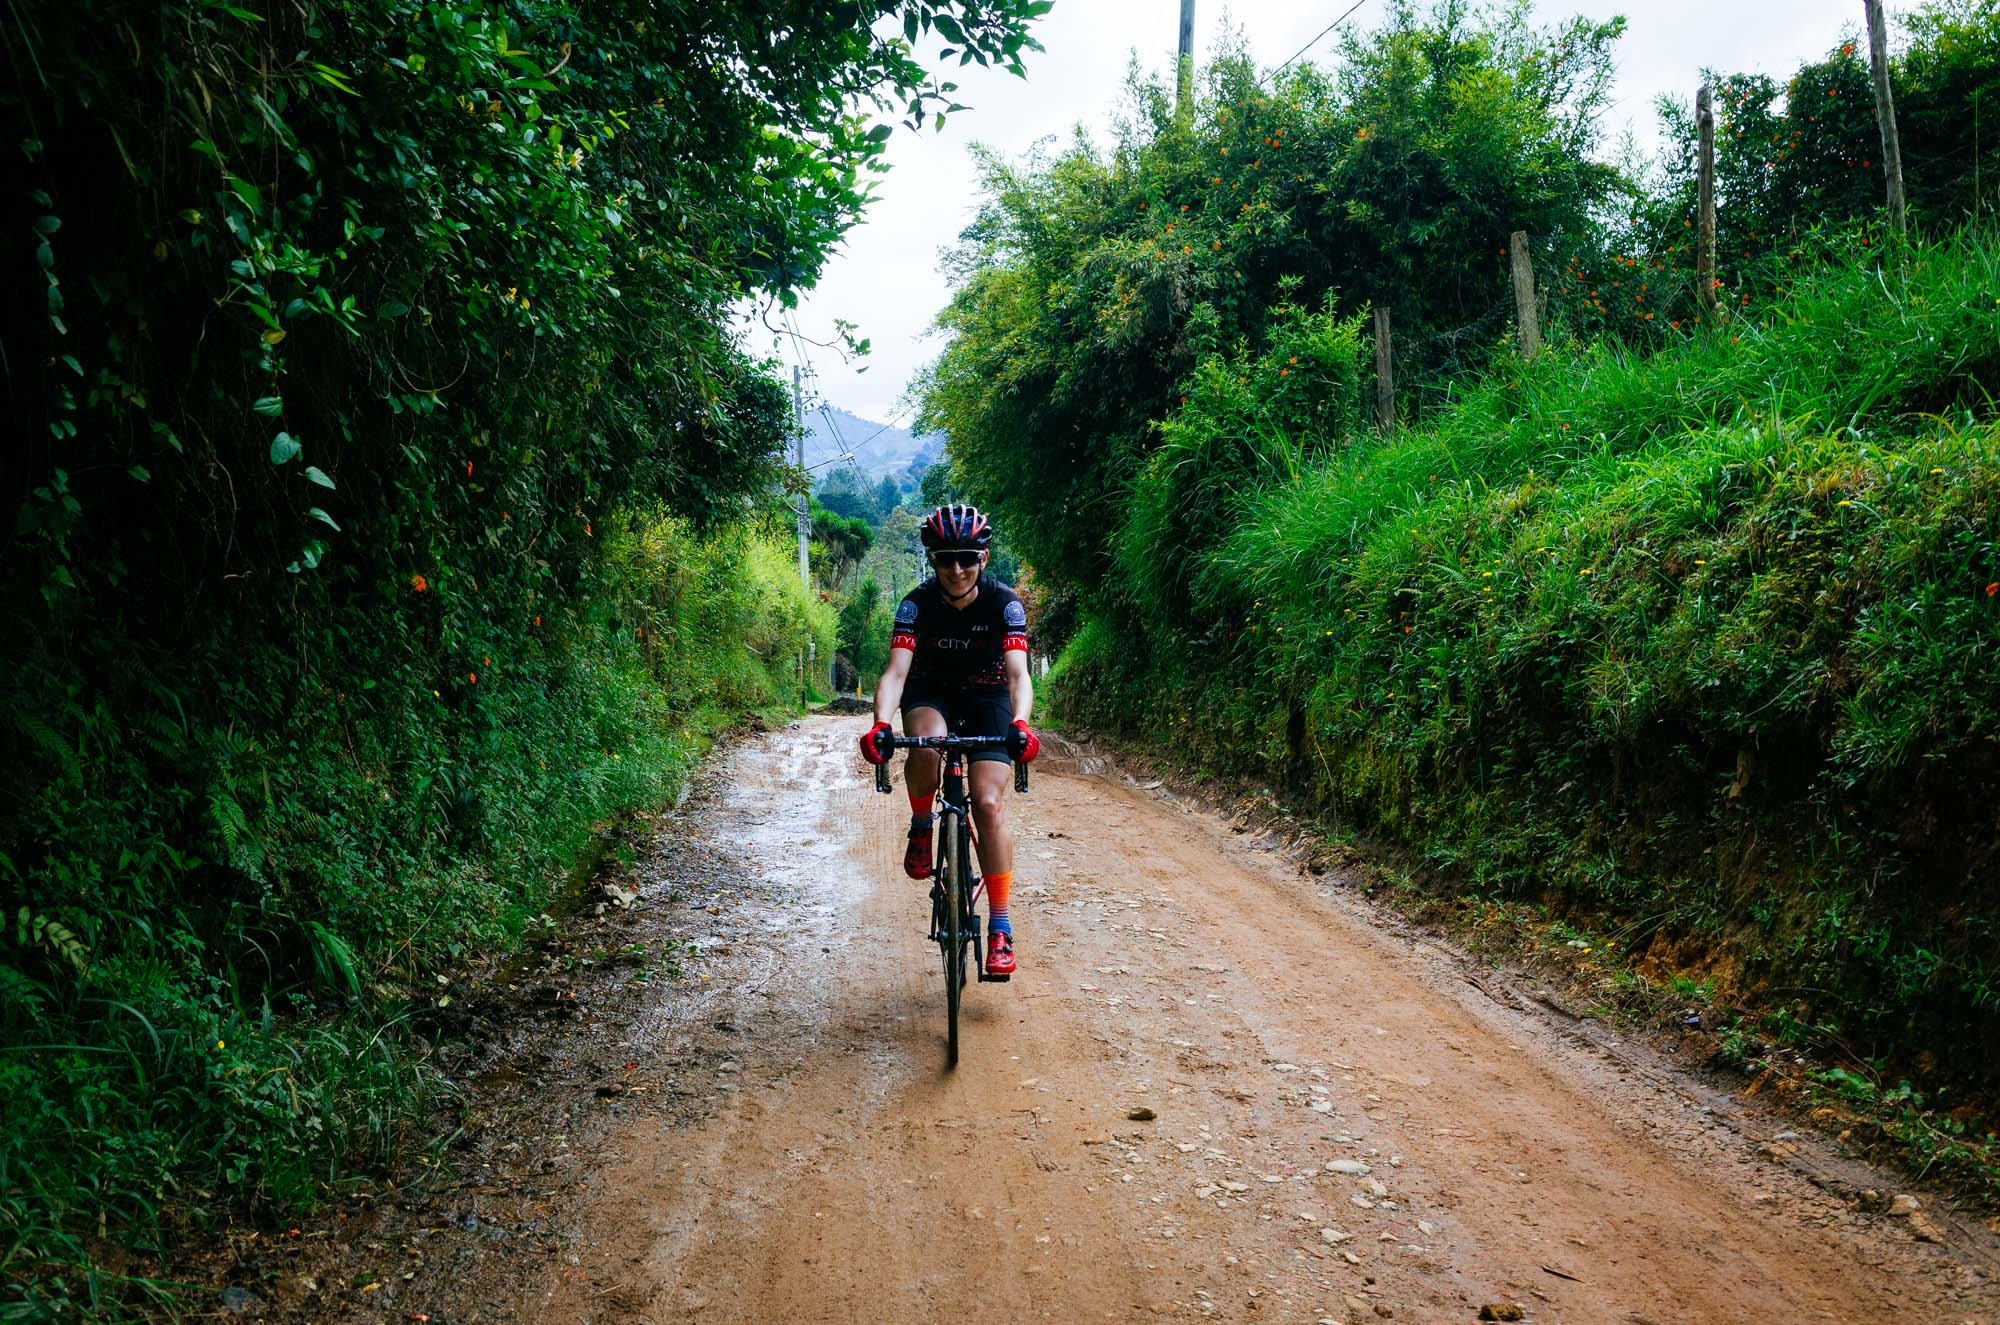 to-be-determined-photo-rhetoric-cycling-in-colombia-1030.jpg